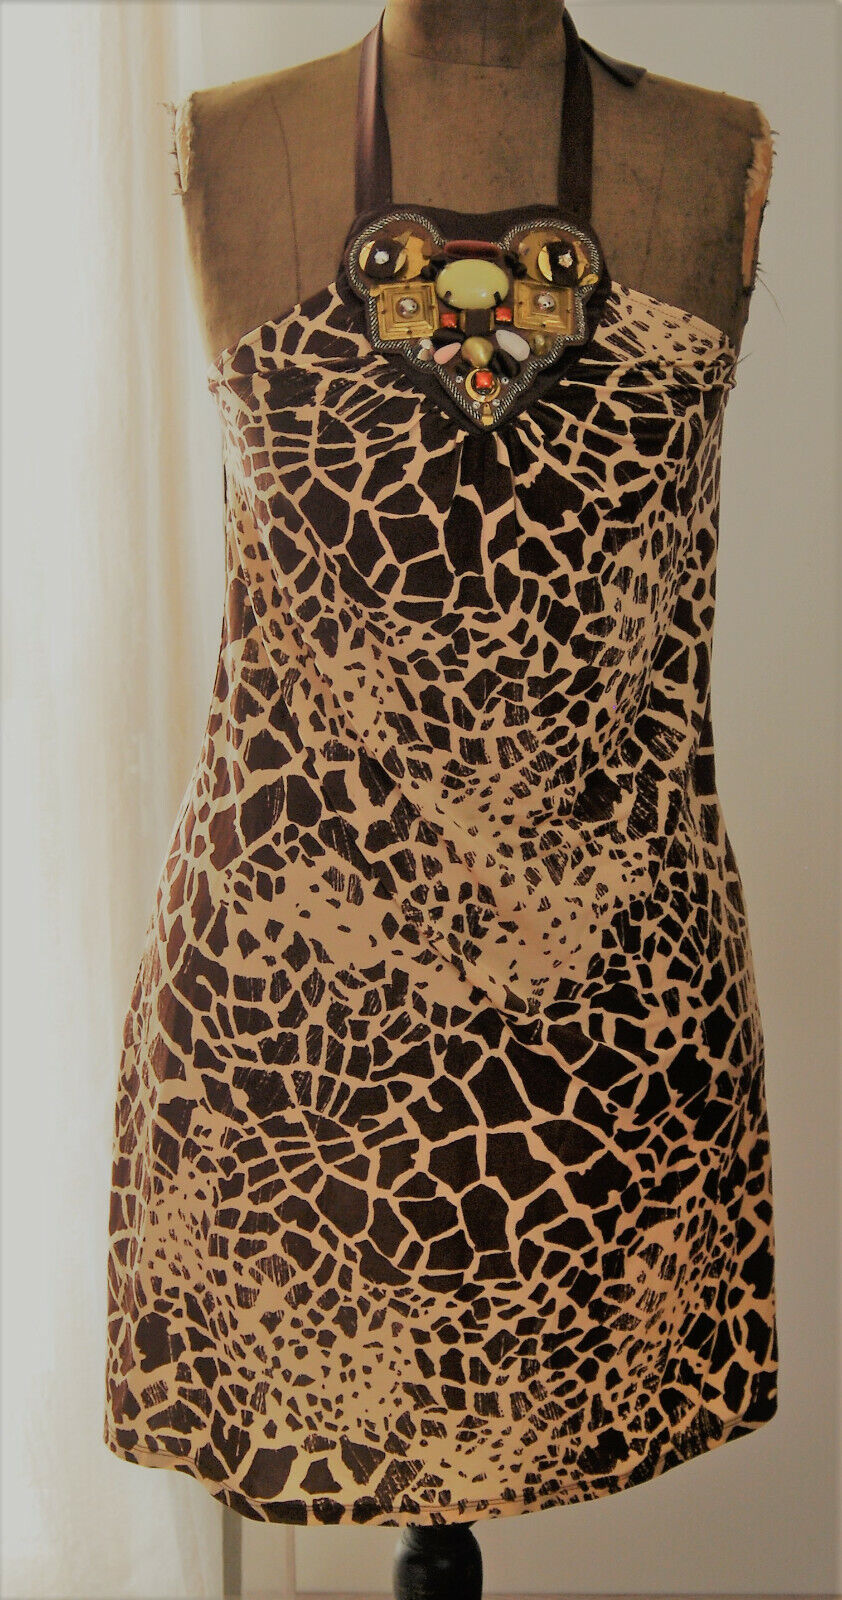 Robe avec plastron amovible en perles et strass de Guess by Marciano taille 42 i